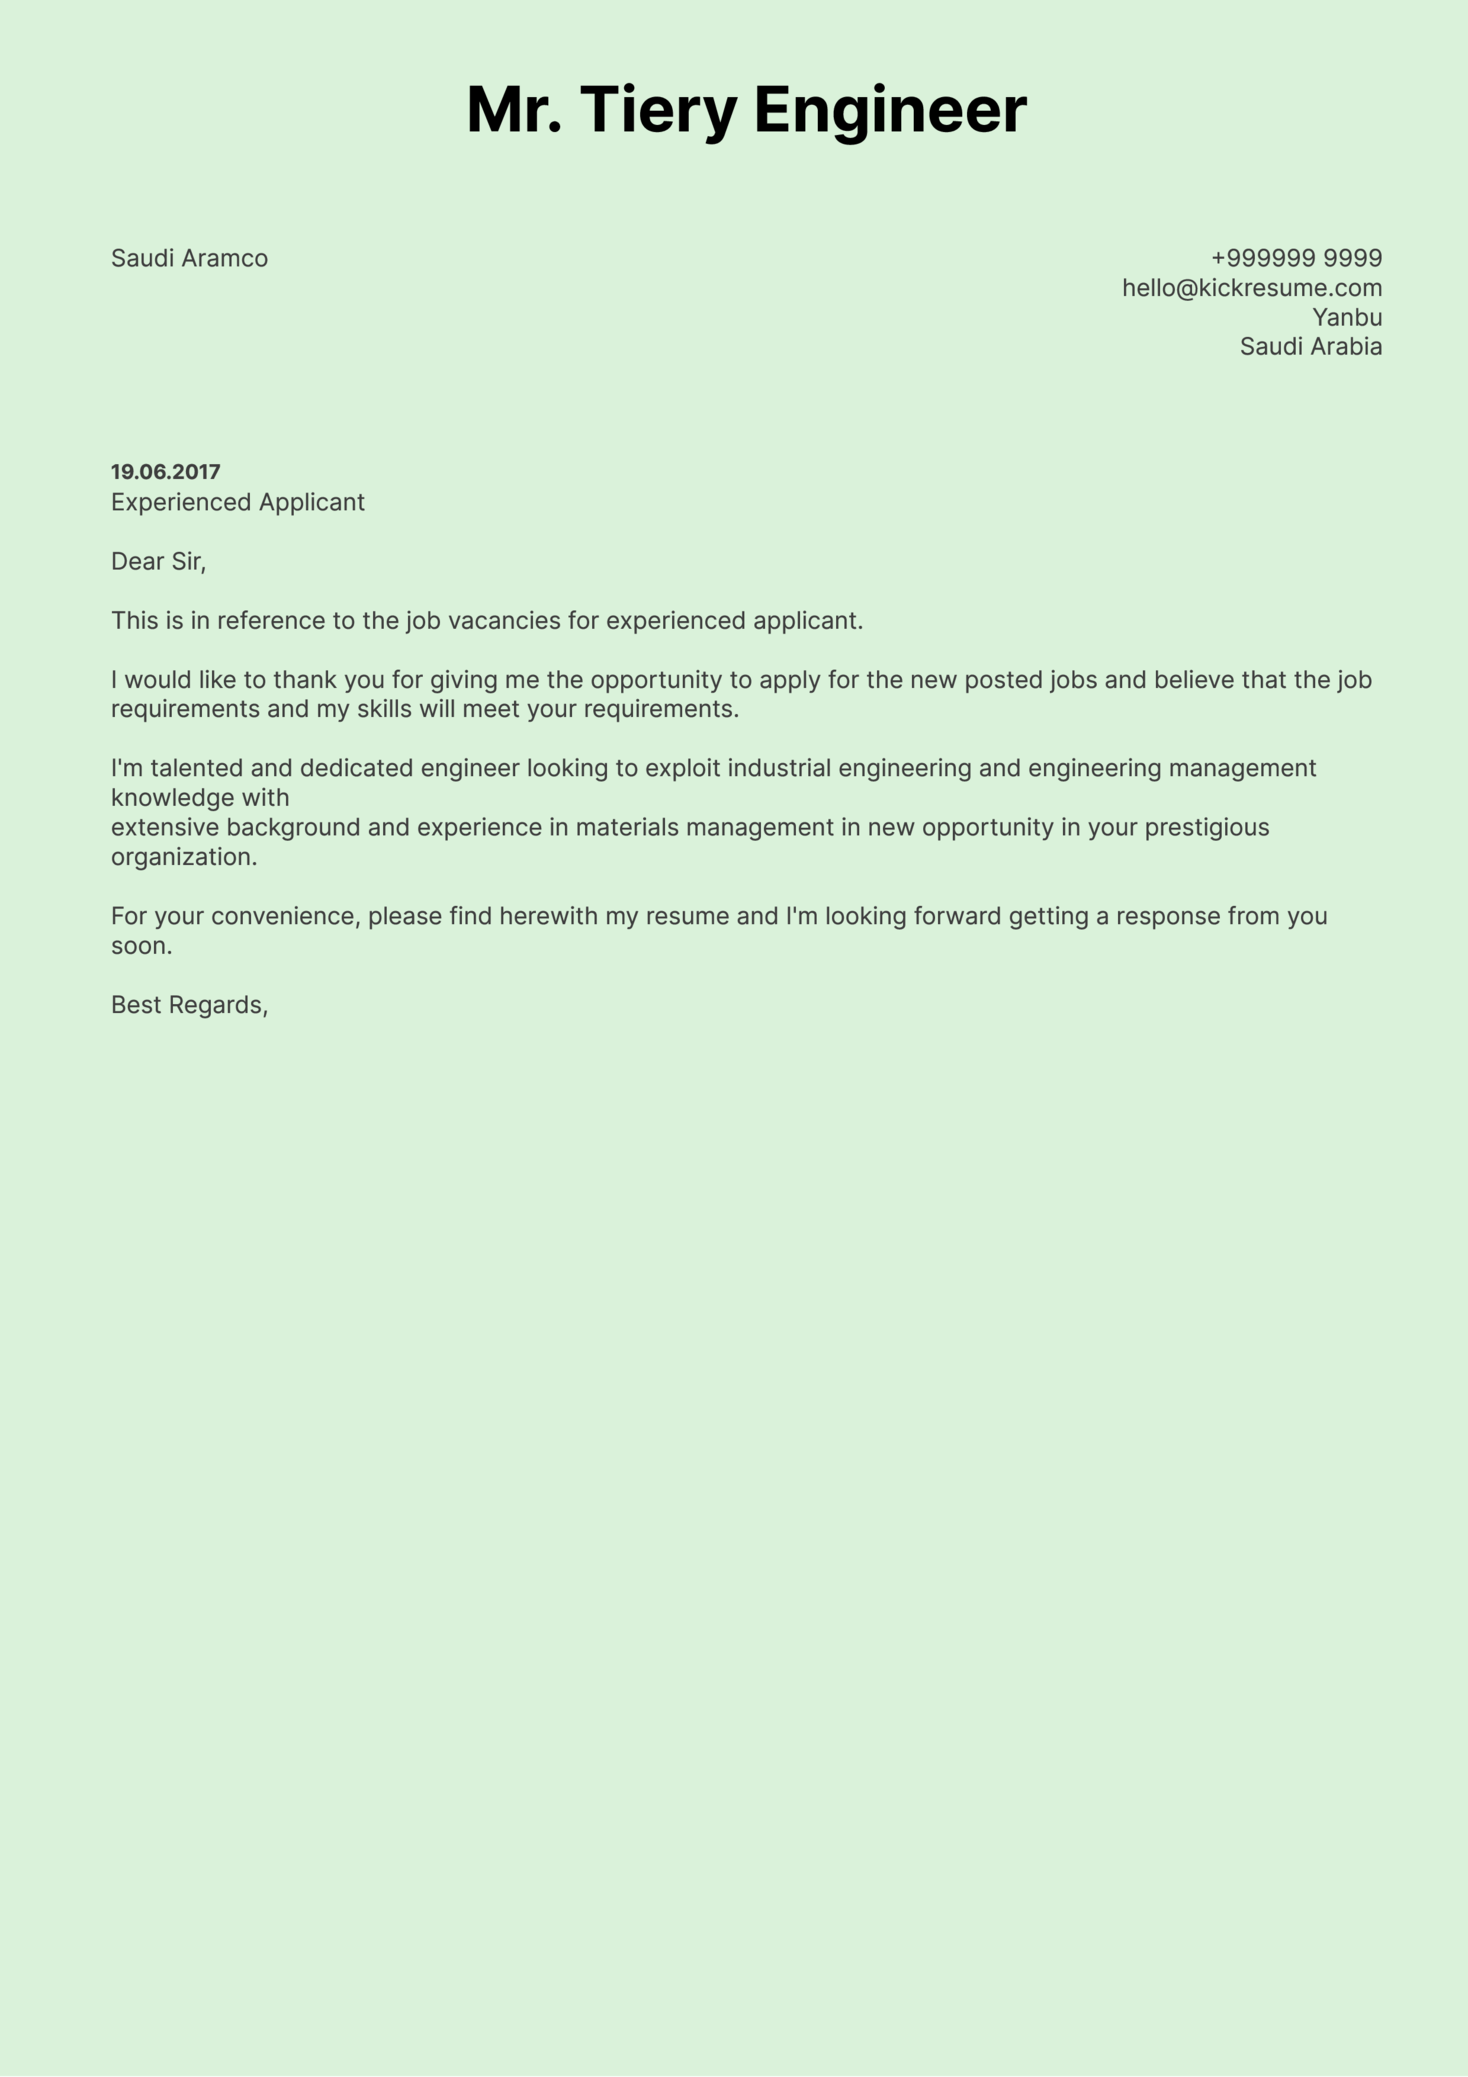 Cover Letter Examples by Real People: Saudi Aramco process engineer ...